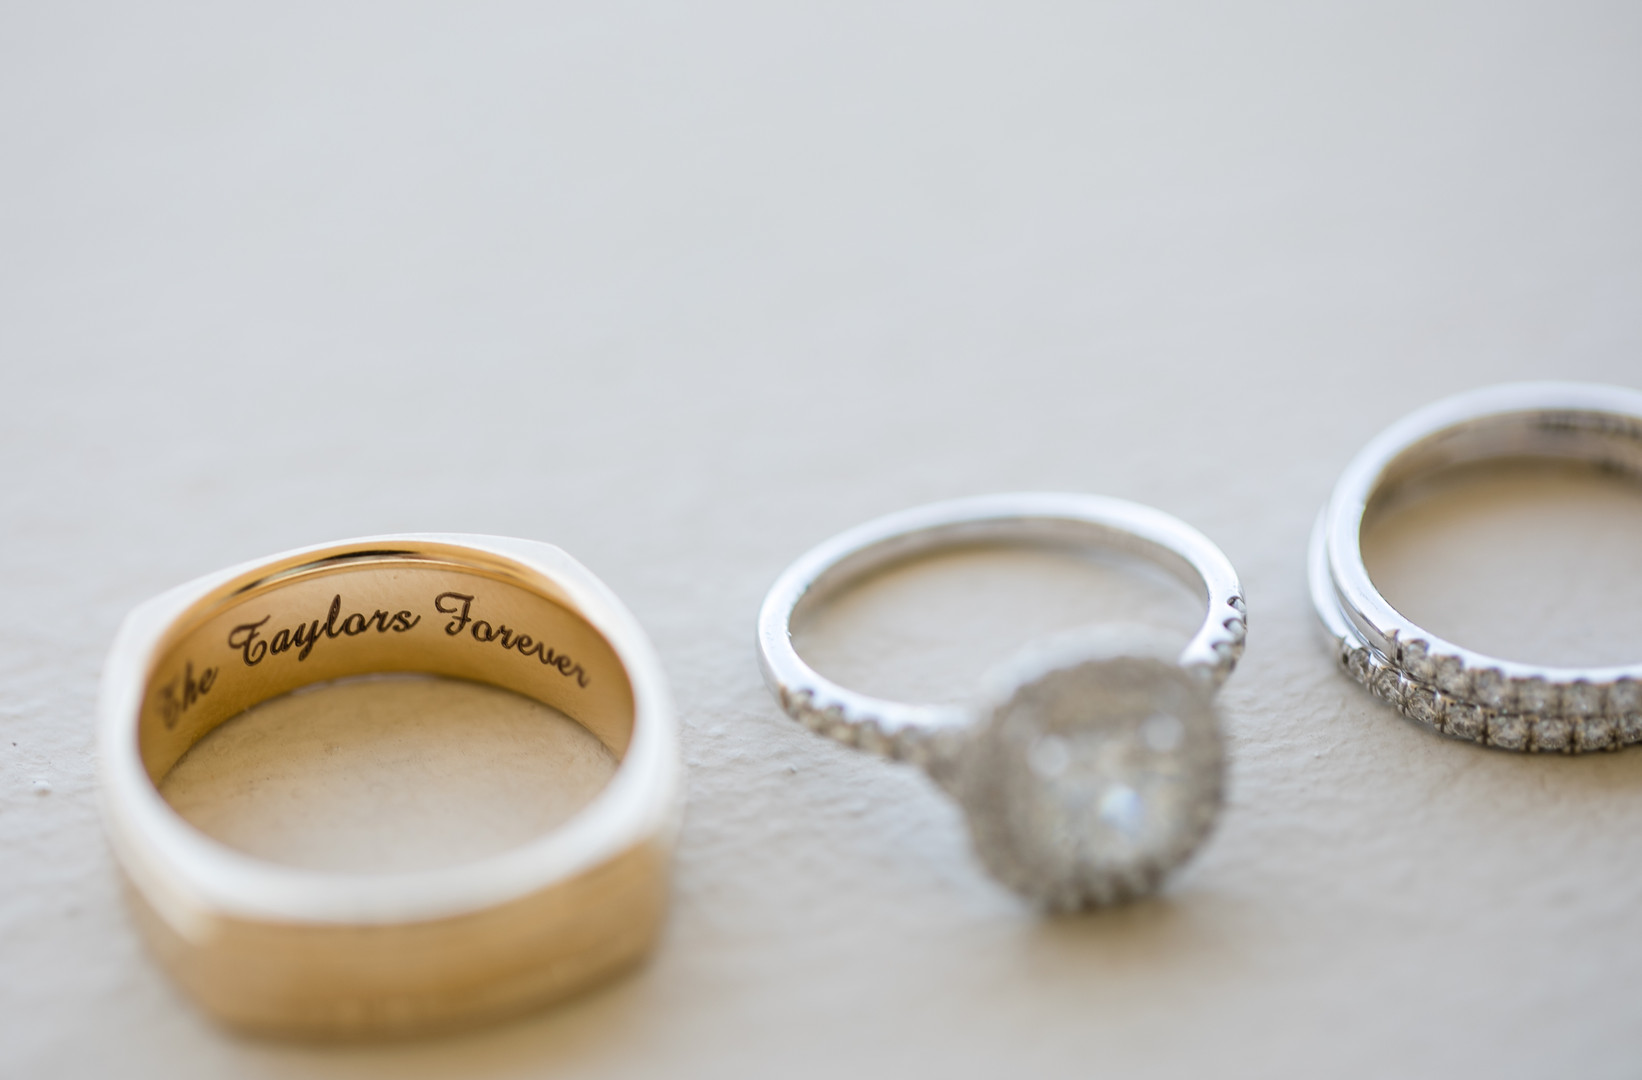 inscription on wedding ring